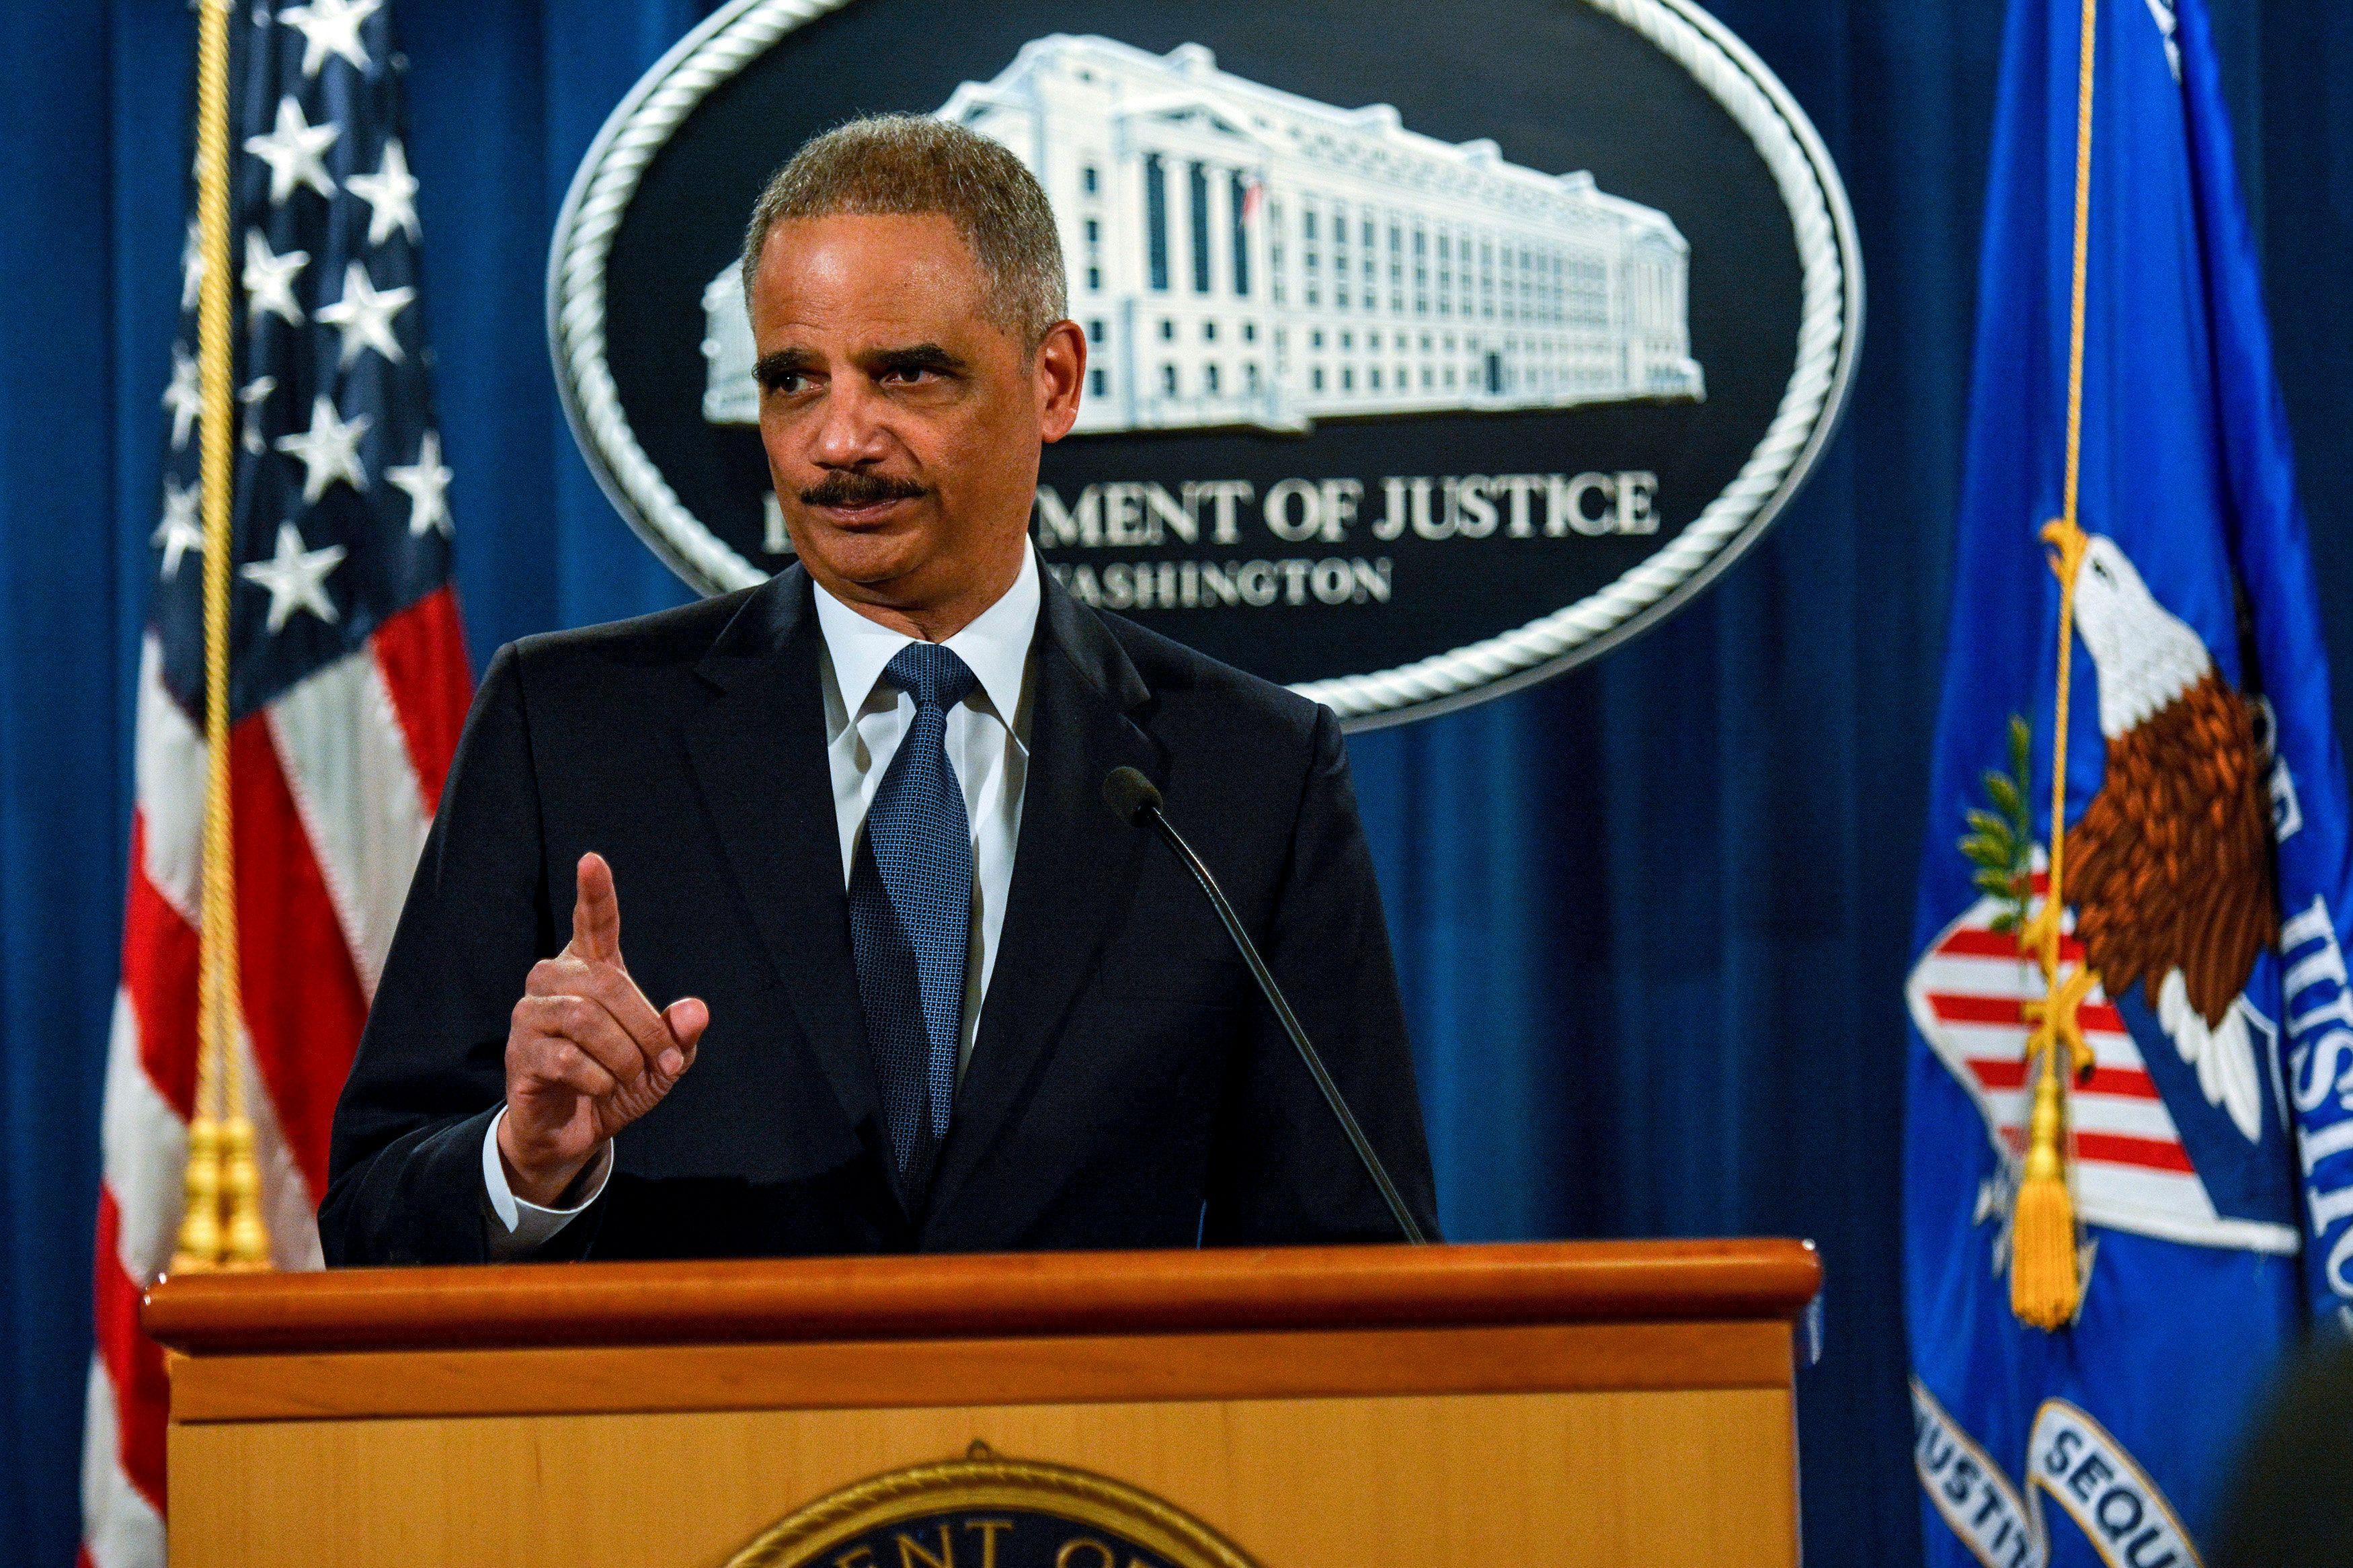 U.S. Attorney General Eric Holder addresses the Justice Department's findings in two investigations regarding the Ferguson, Missouri shooting of Michael Brown by Darren Wilson in Washington March 4, 2015. REUTERS/James Lawler Duggan   (UNITED STATES - Tags: POLITICS CRIME LAW)